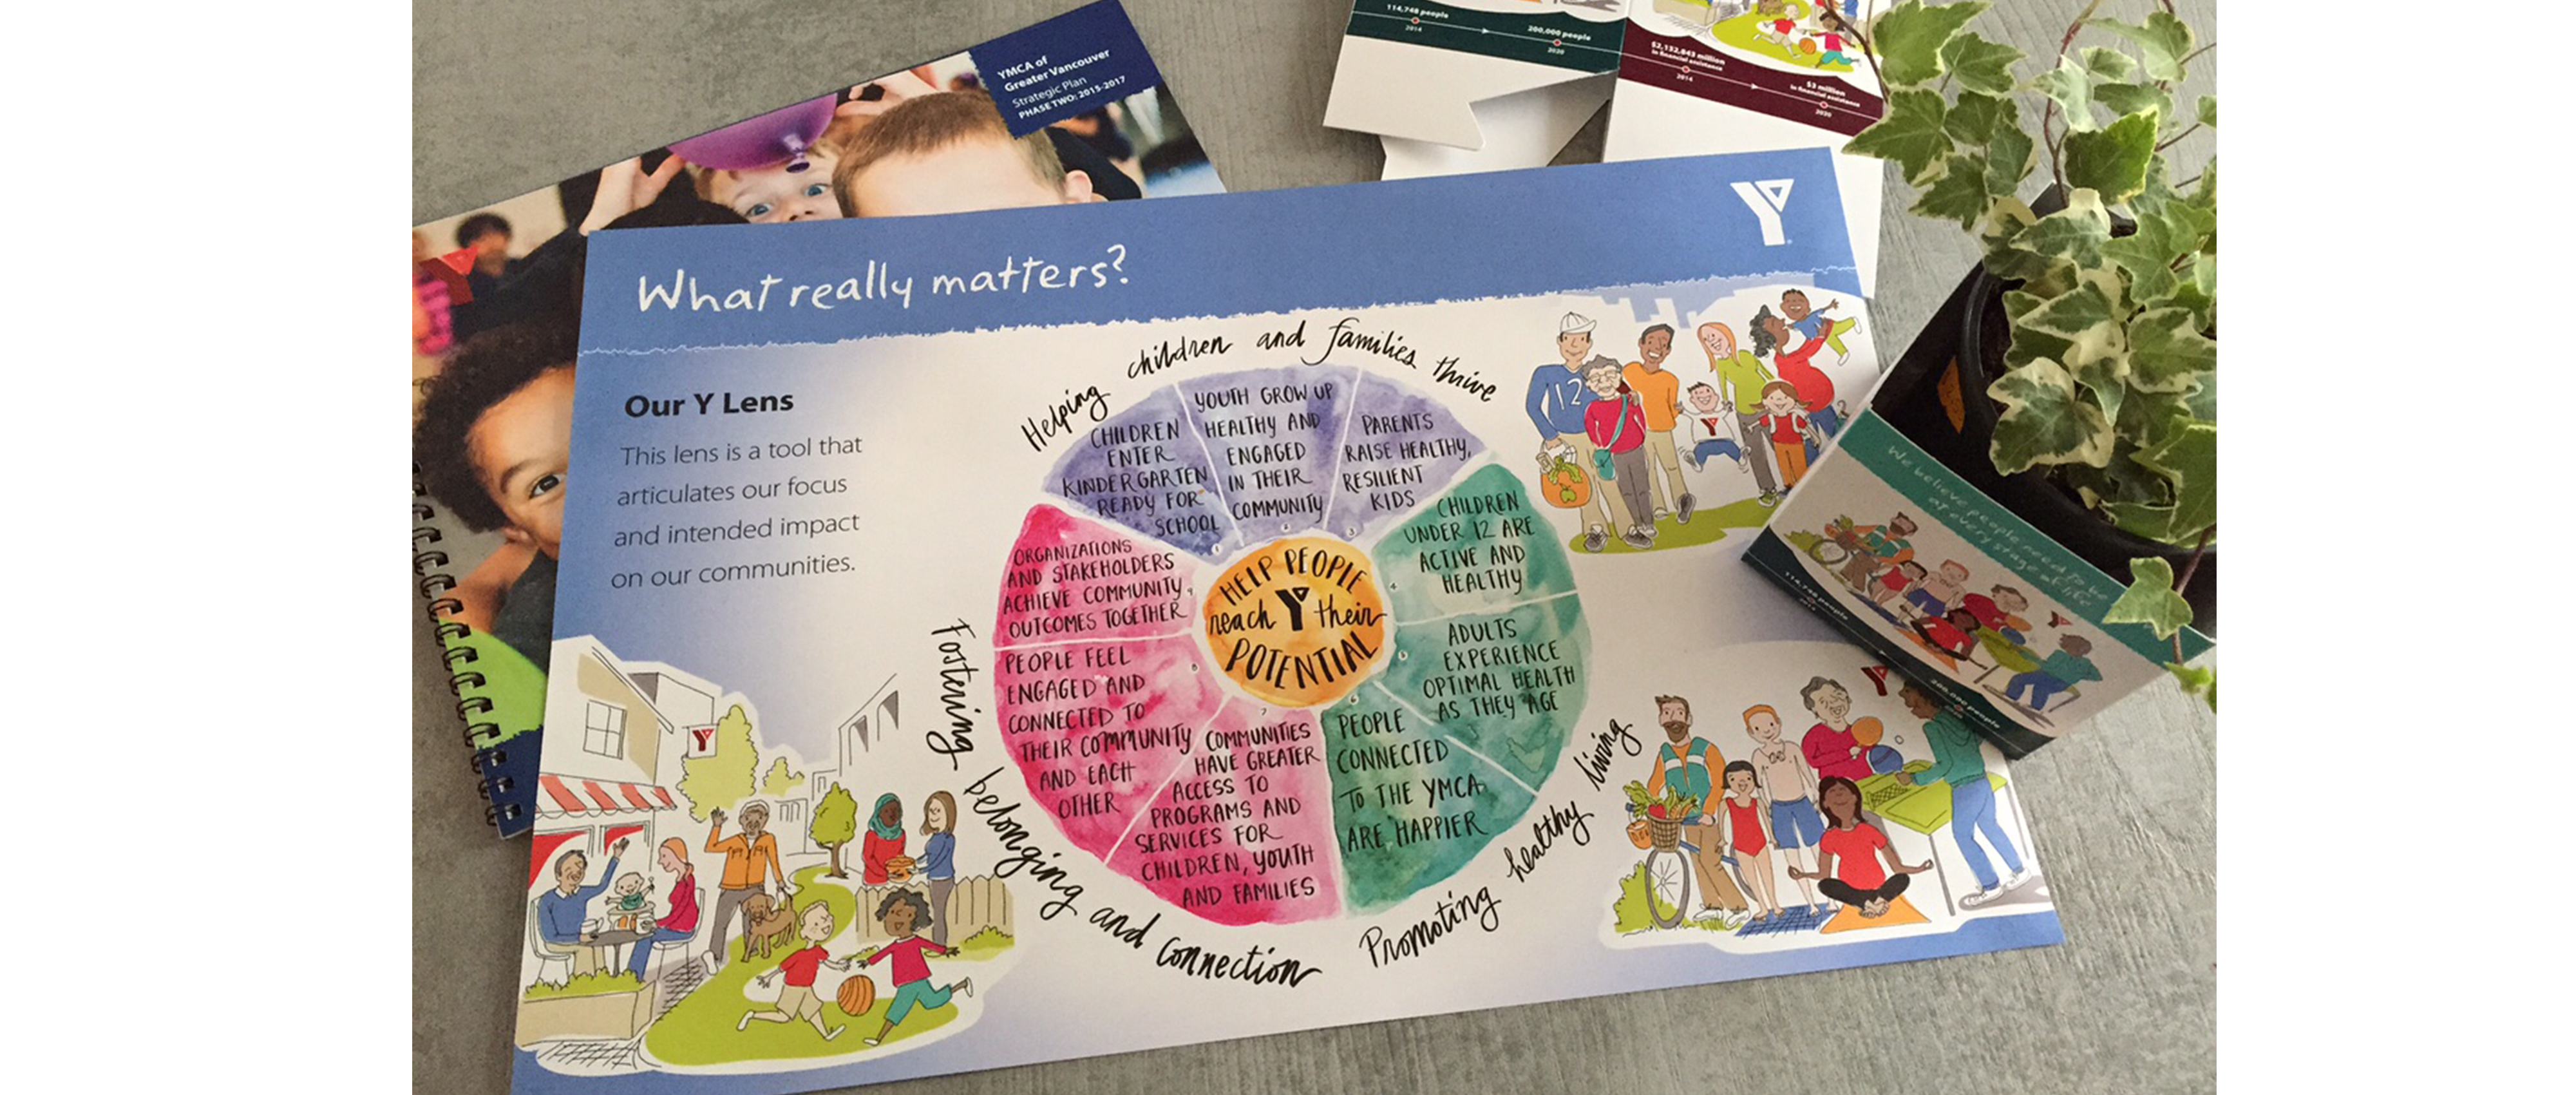 YMCA image of visual strategic plan